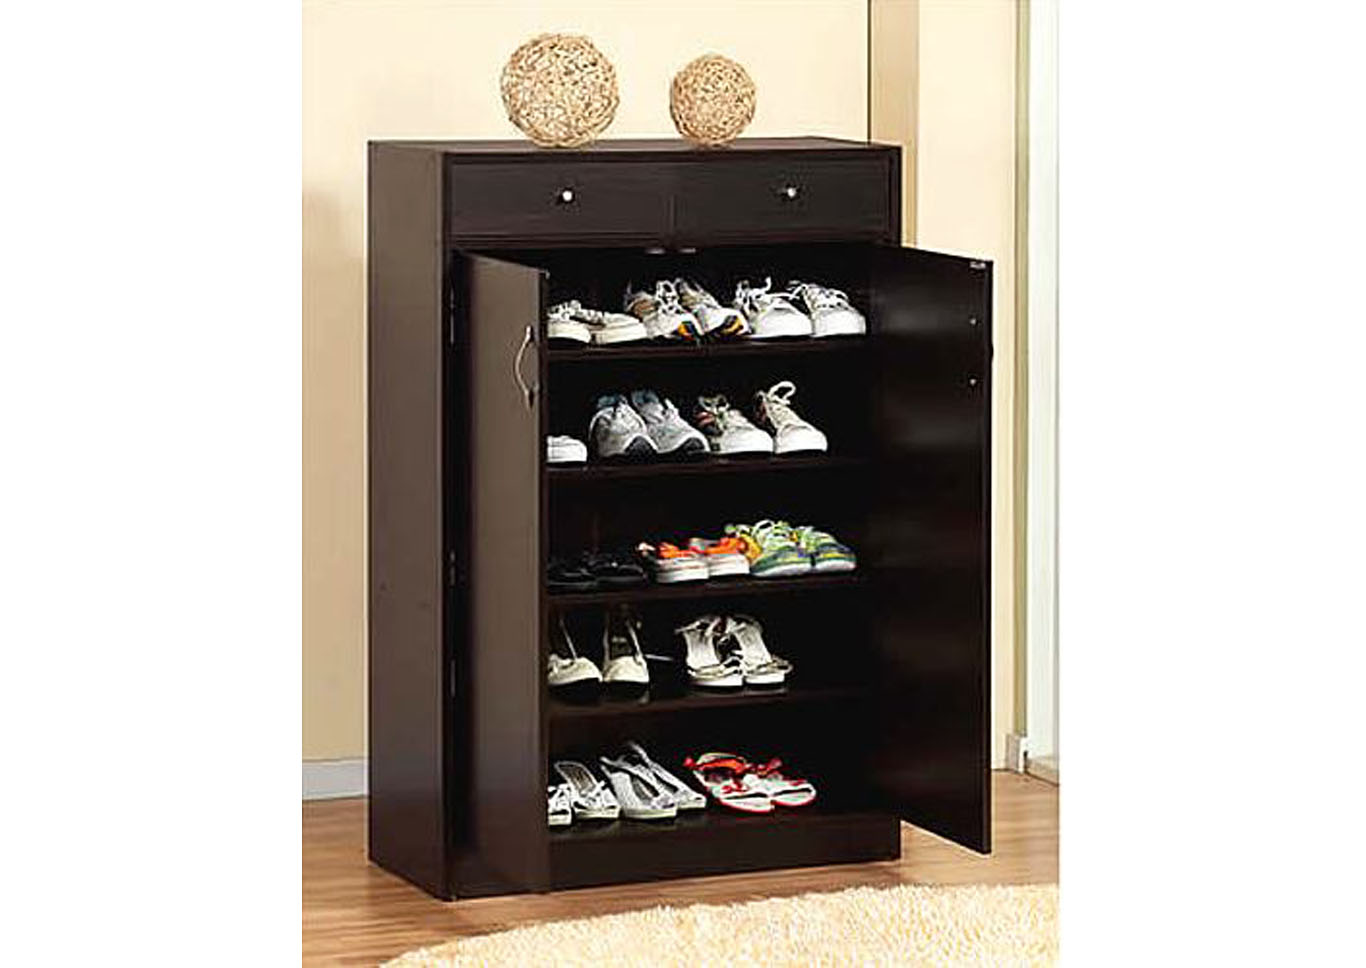 Shoe Cabinet and Storage,Instore